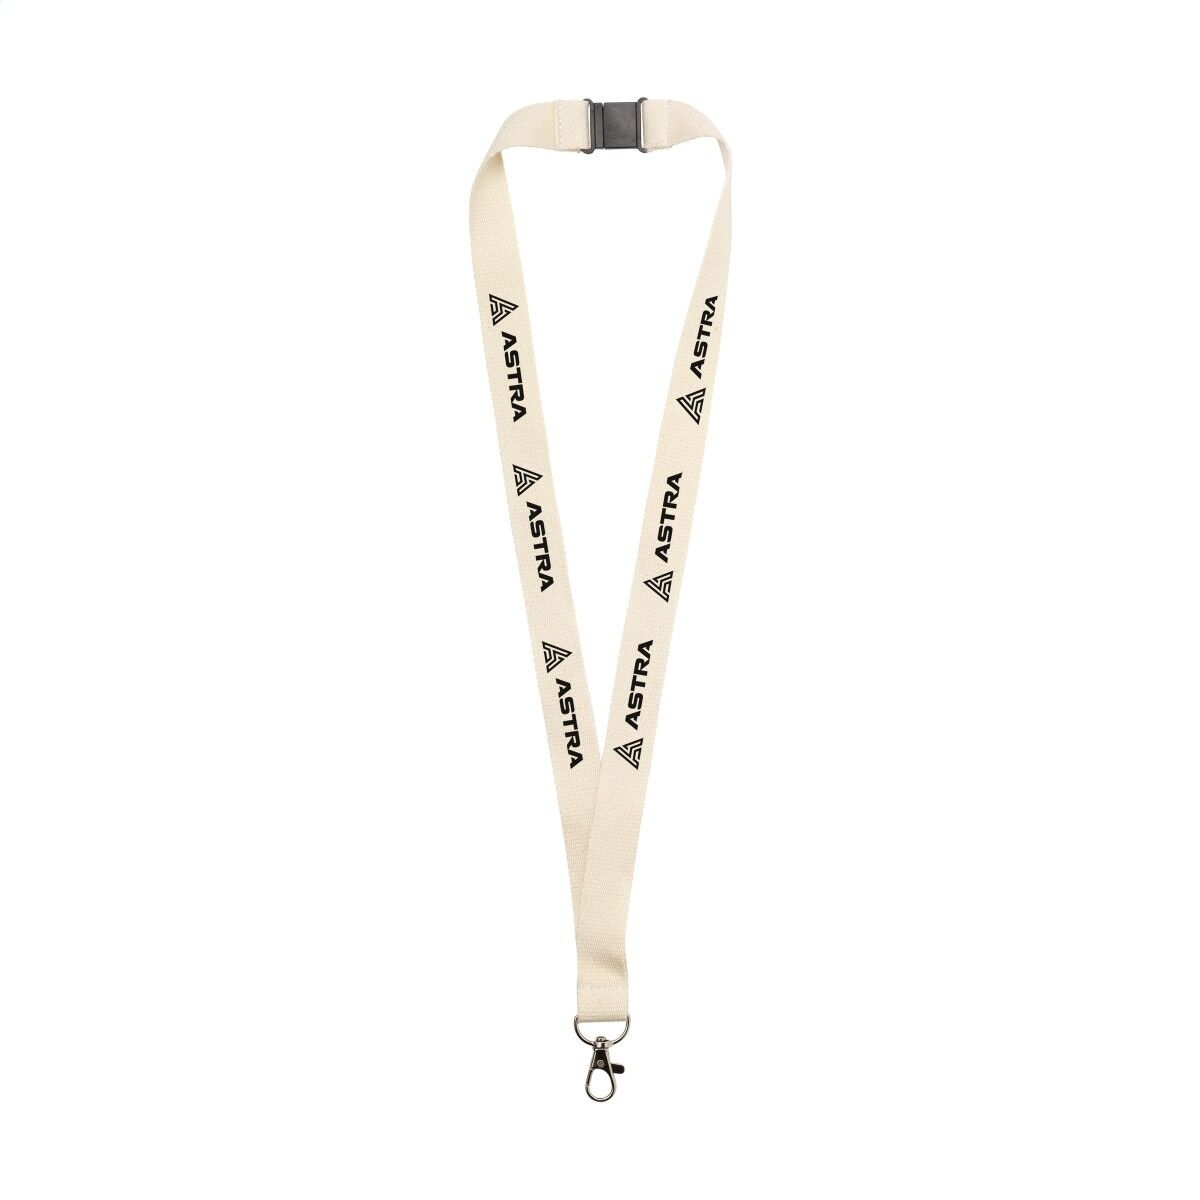 Organic Cotton Lanyard printed both sides